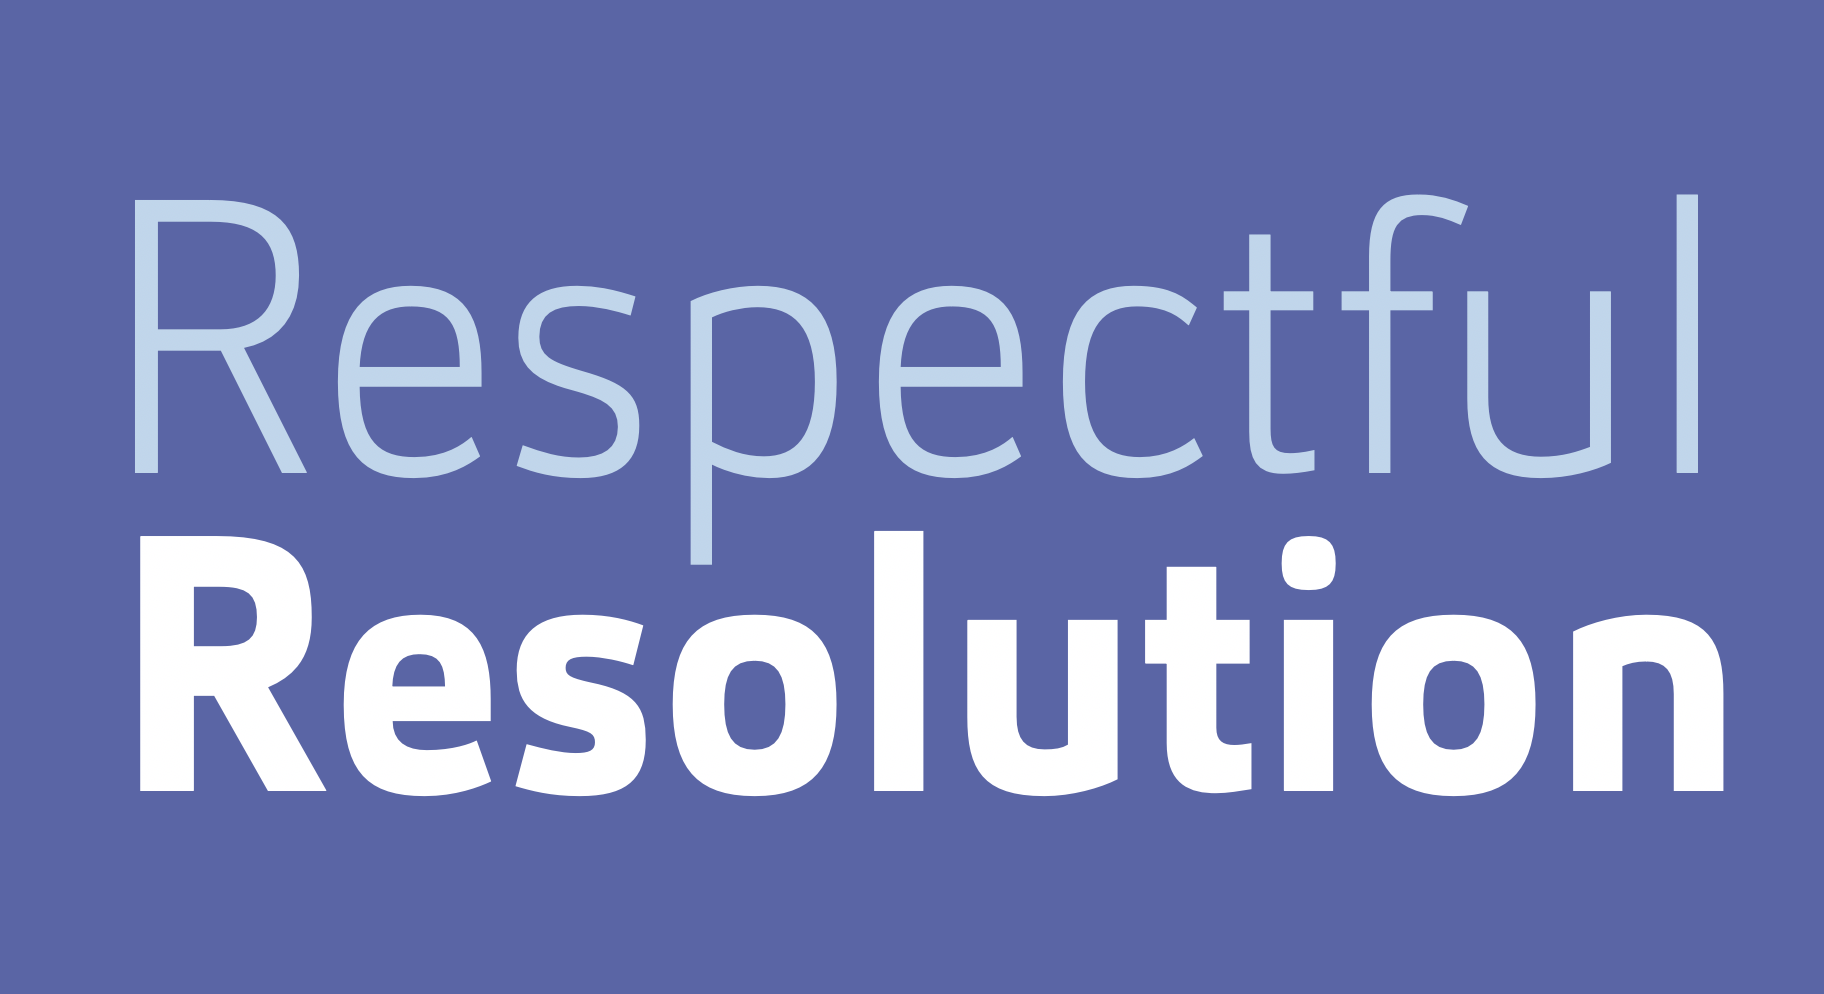 Respectful resolution